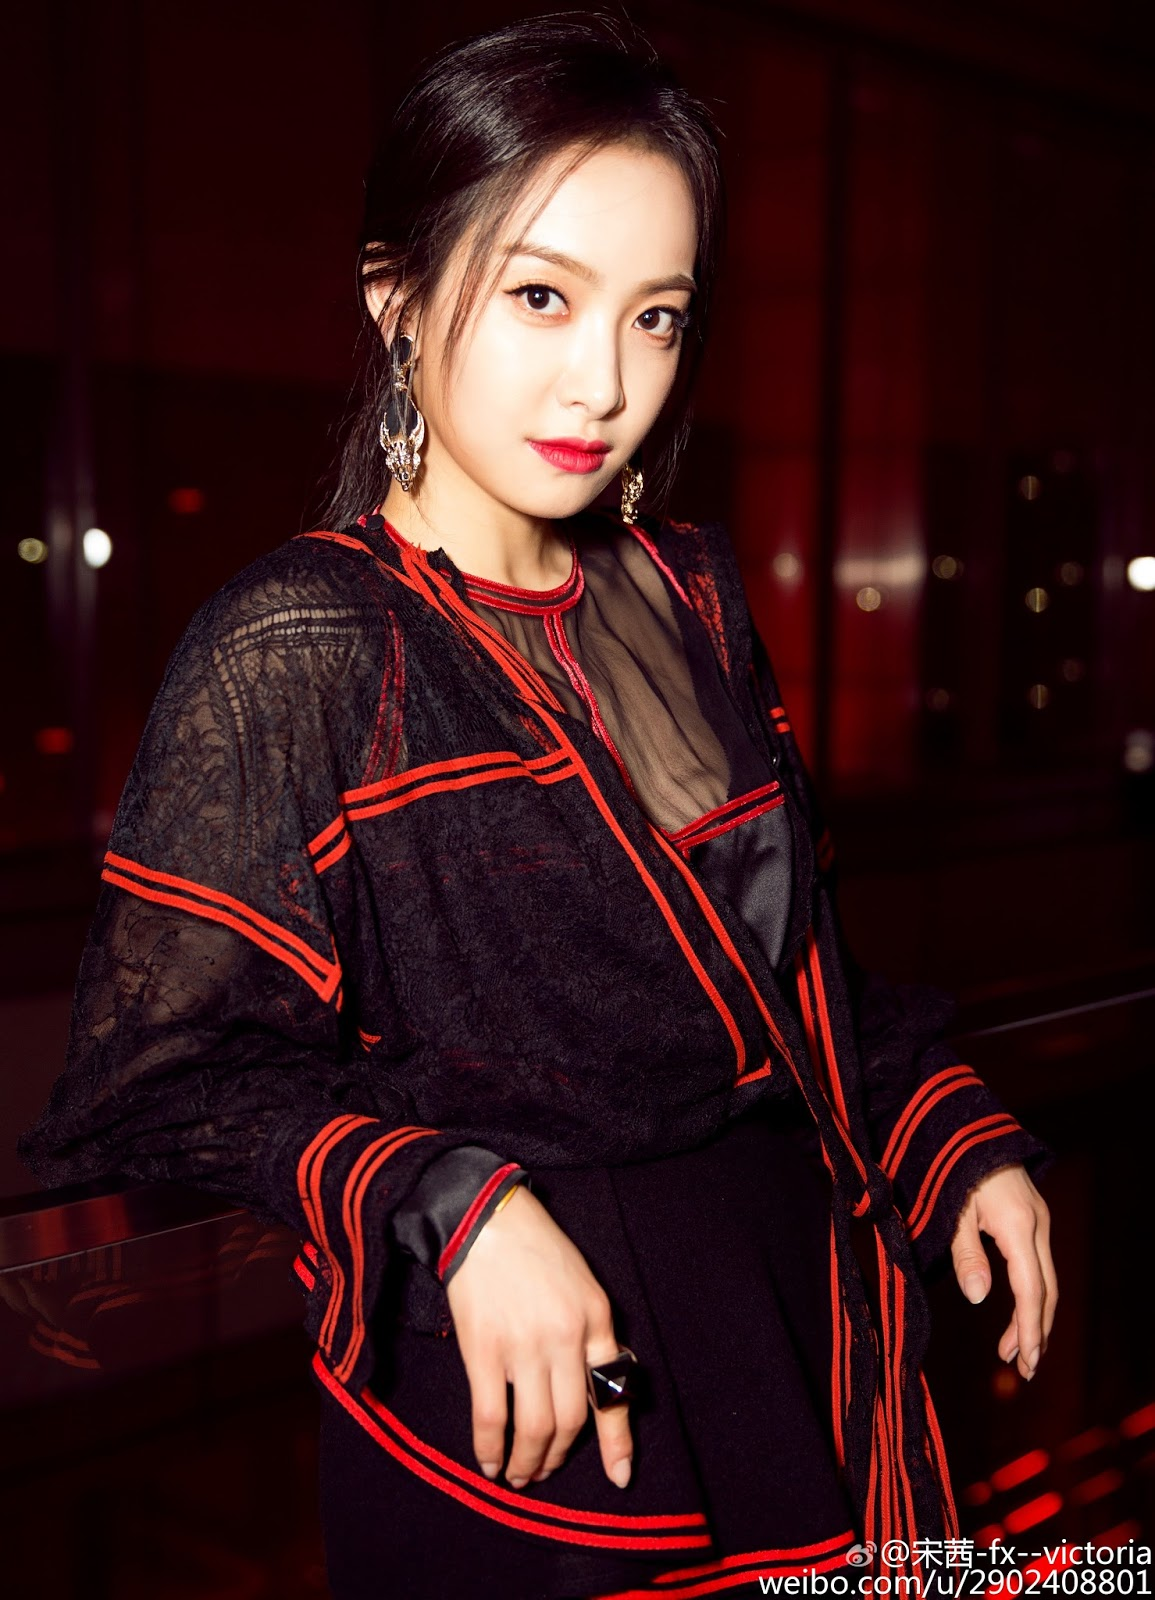 Pin by amani on Kpop&kd   Women, Victoria song, Kpop girls